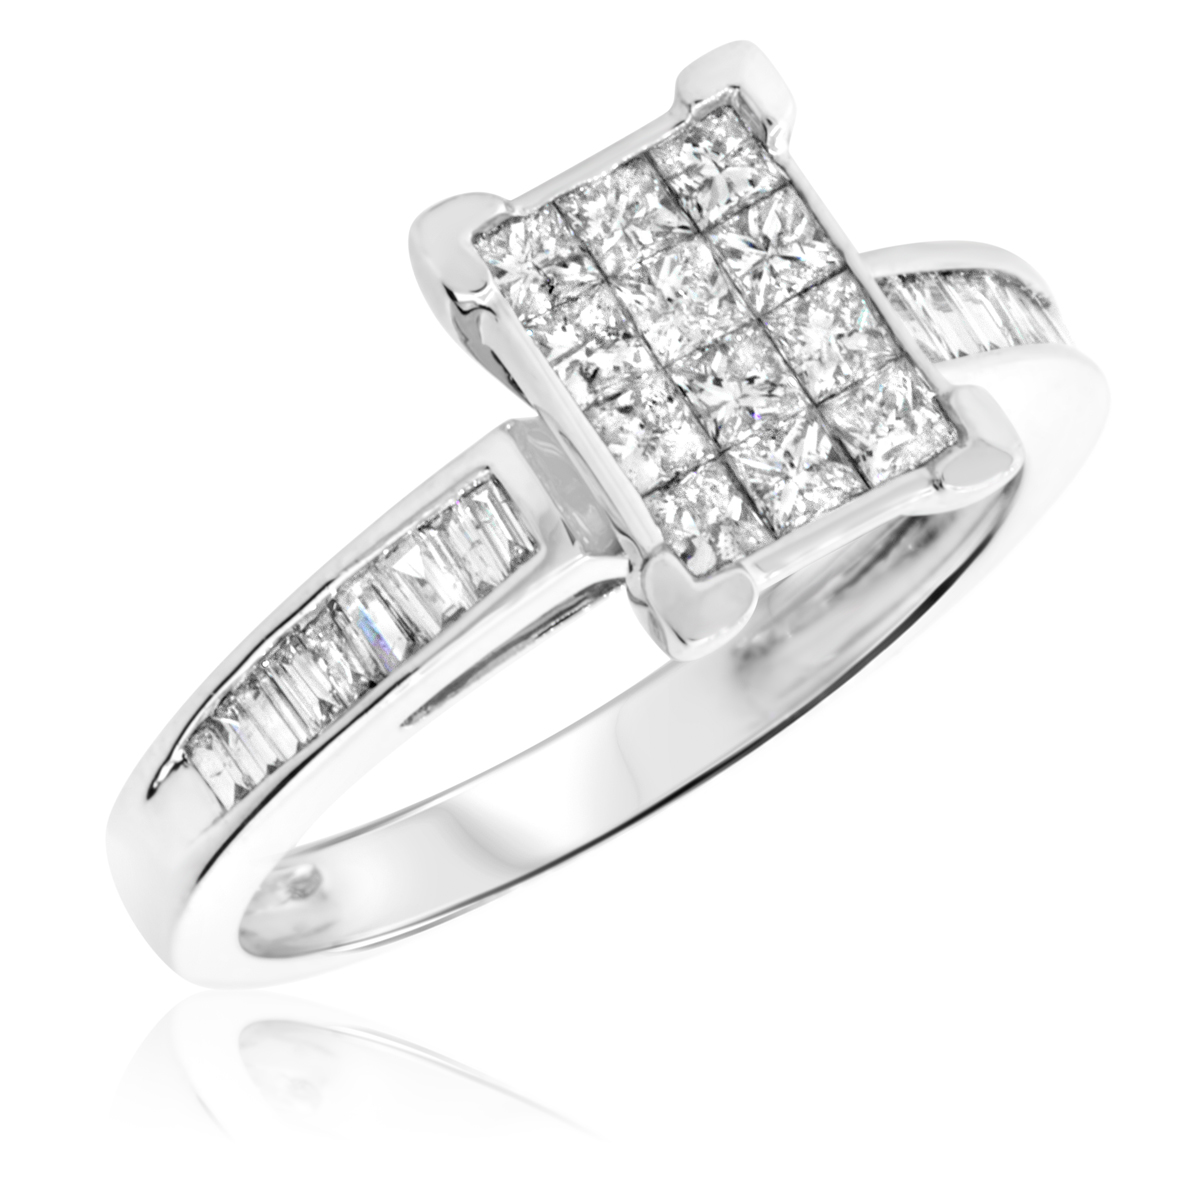 7/8 Carat T.W. Princess, Baguette Cut Diamond Ladies Engagement Ring 14K White Gold